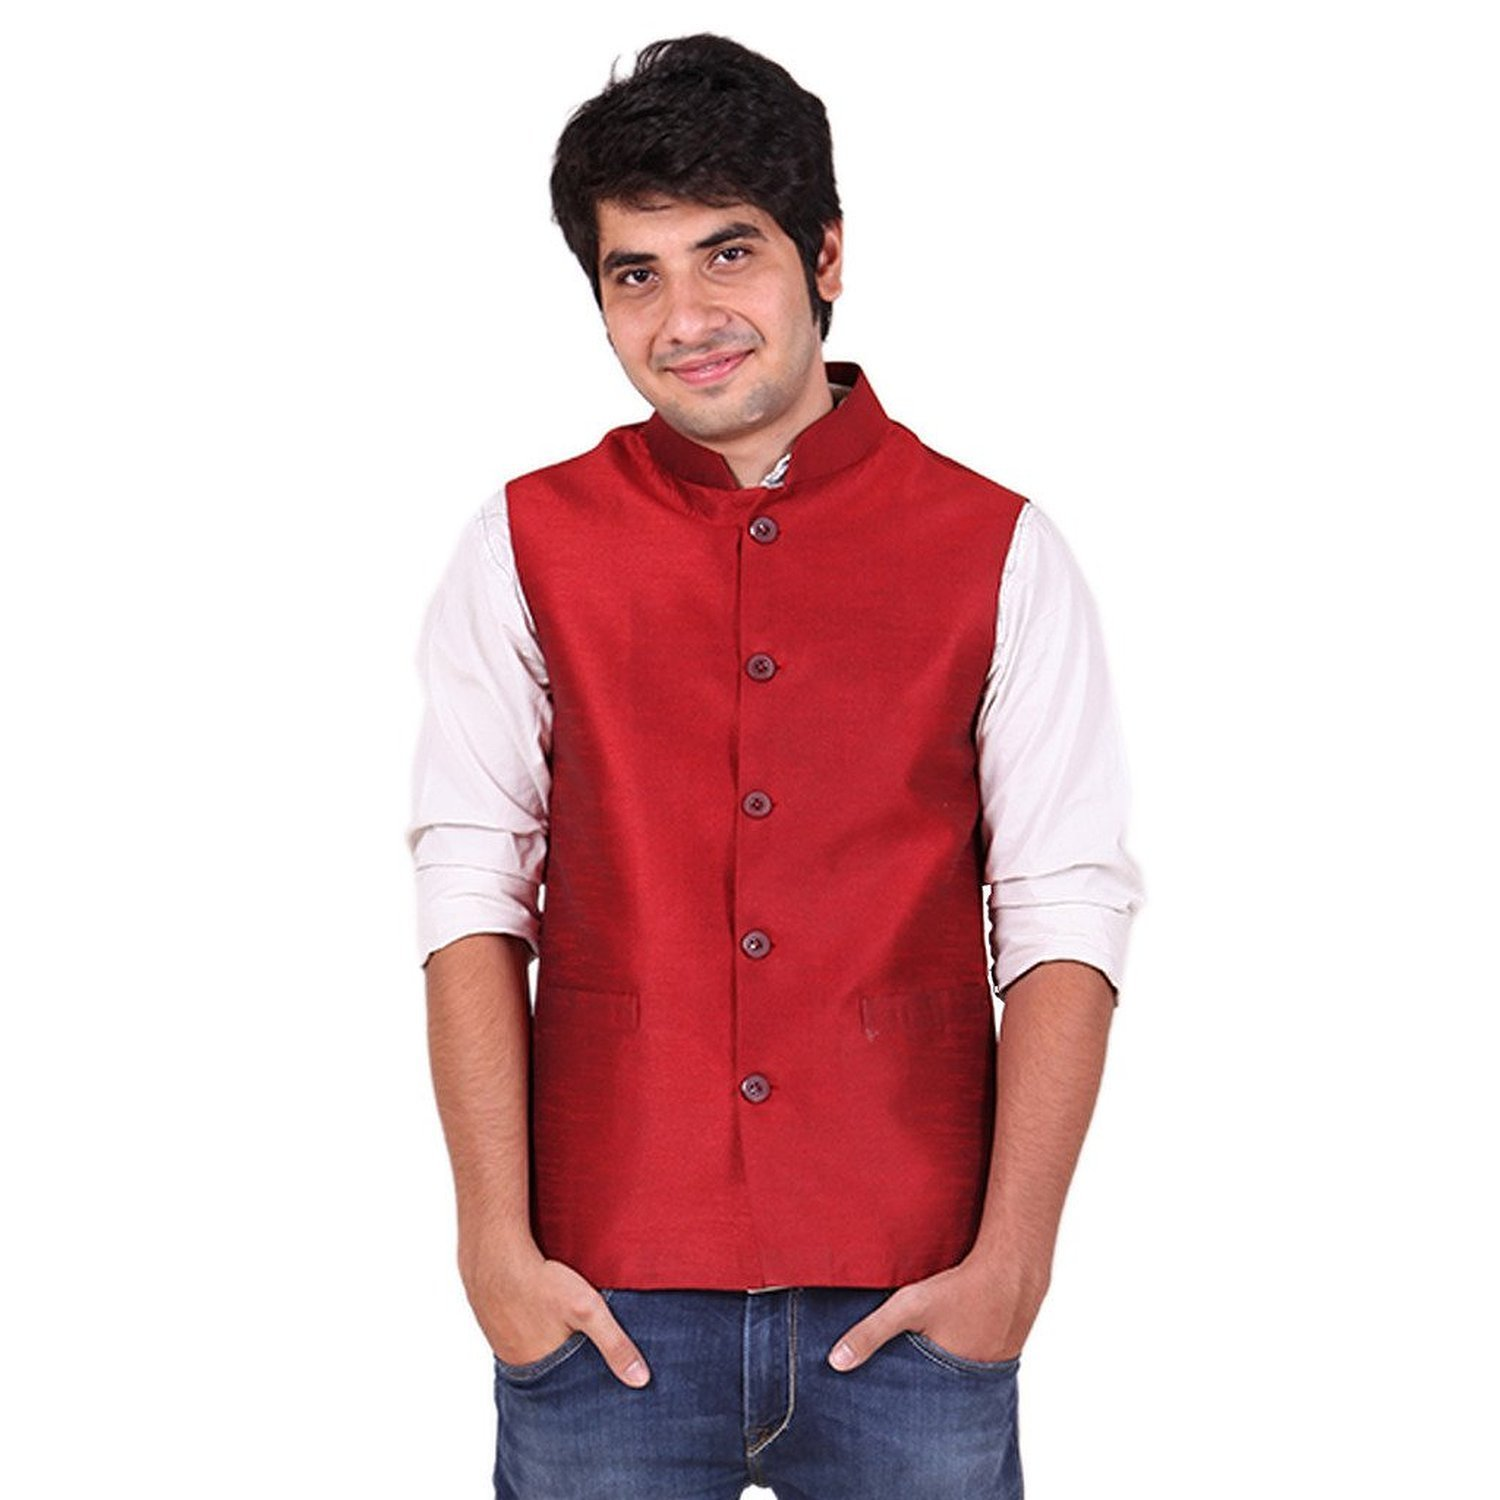 Royal Kurta Men's Polyester Nehru Jacket X-Large Red by Royal Kurta